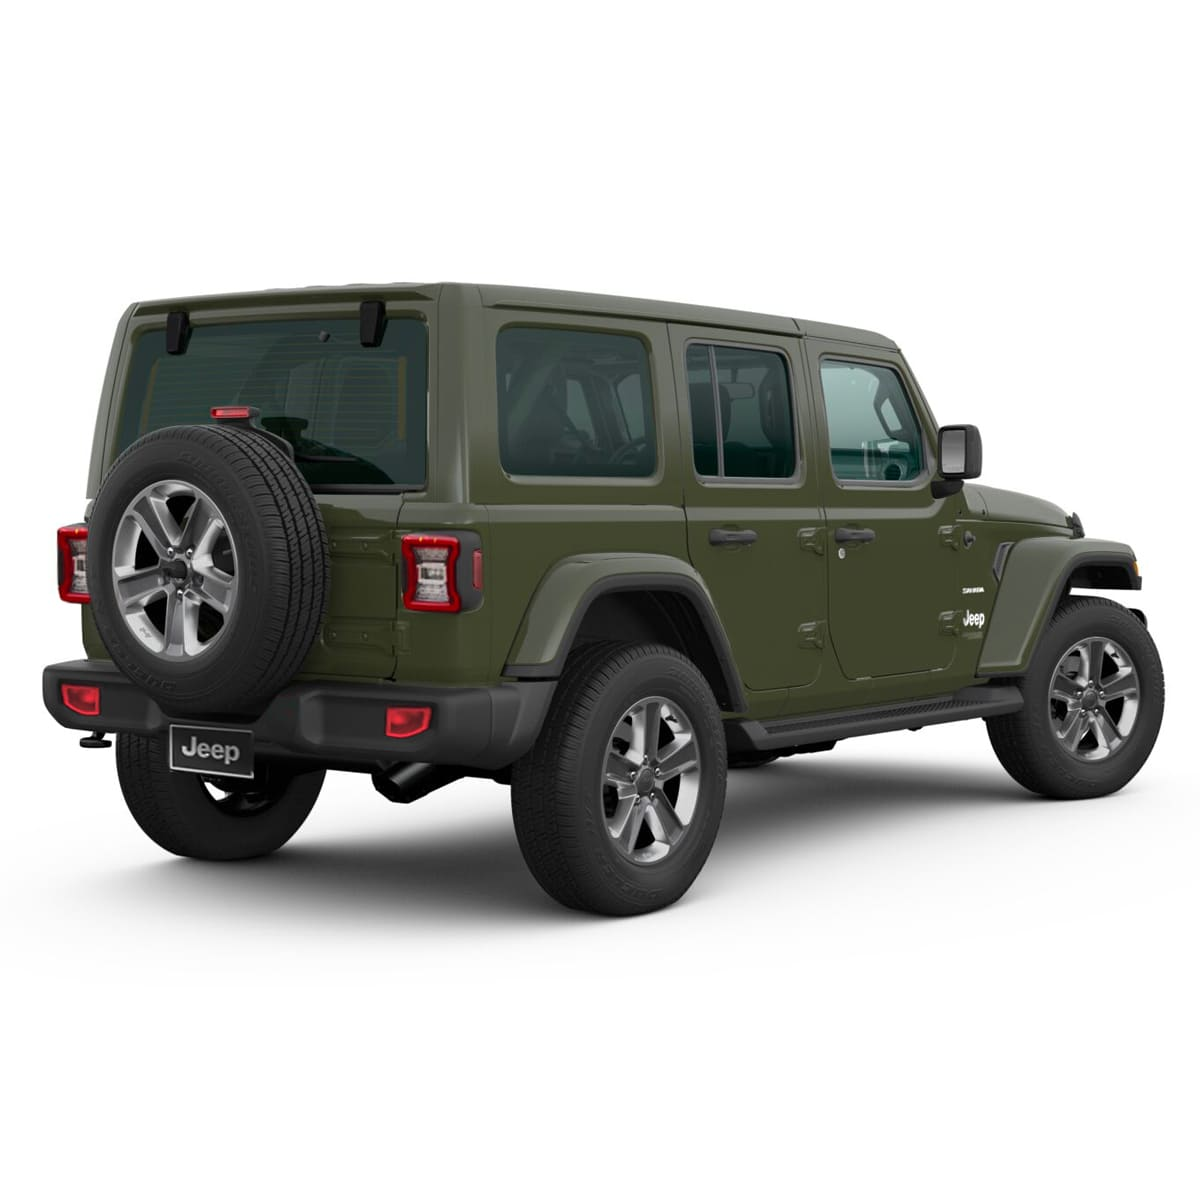 Jeep ALL NEW WRANGLER UNLIMITED SAHARA 4X4 3.6L AT SARGE GREEN Exterior 3